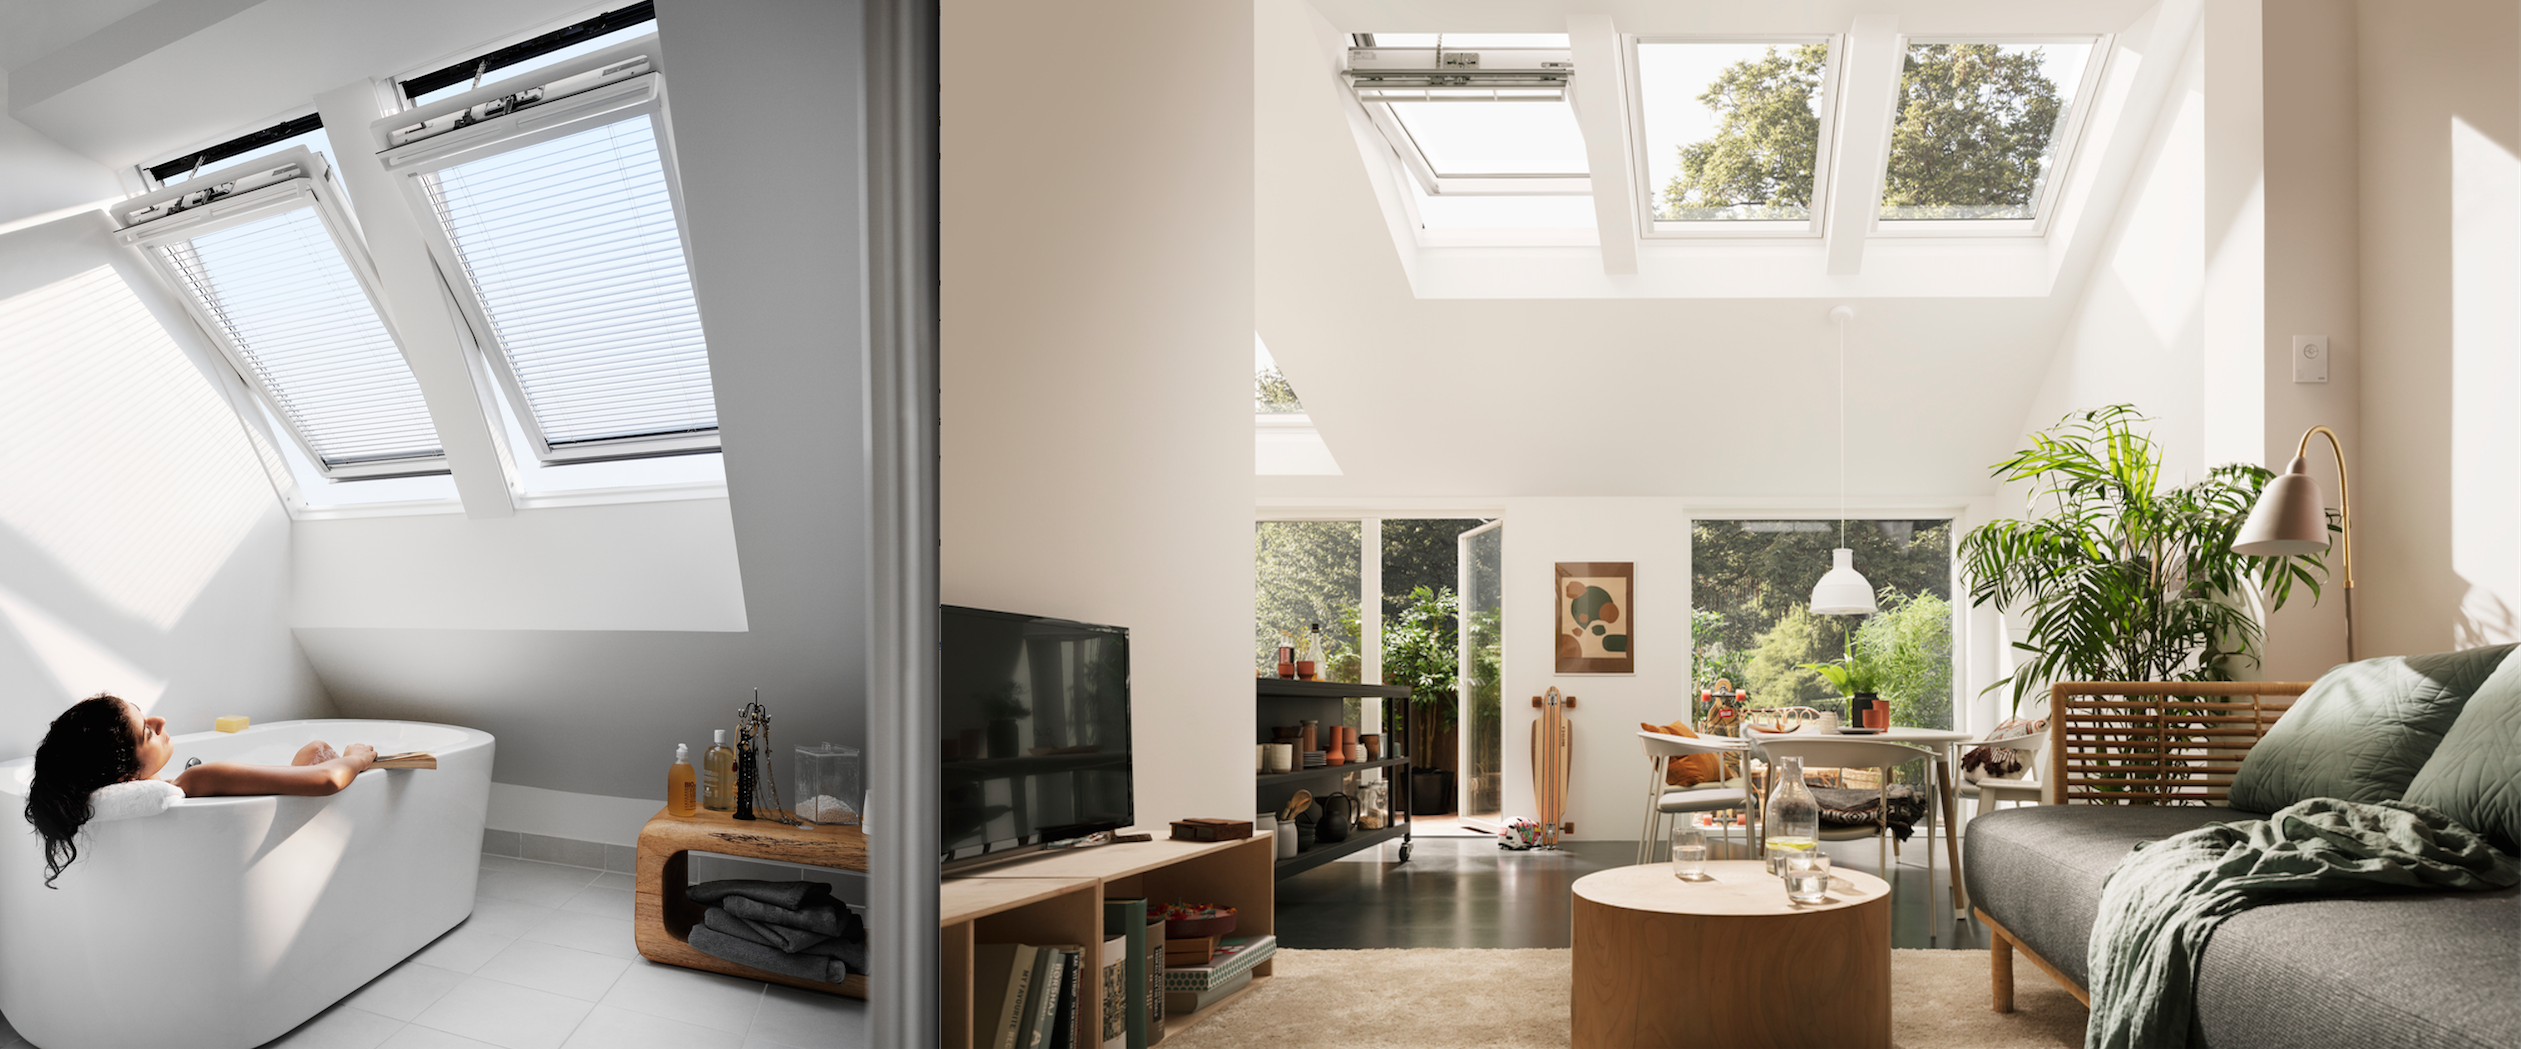 Velux Roof Windows - image Velux-Intesra-Windows on https://rafterloftconversions.co.uk